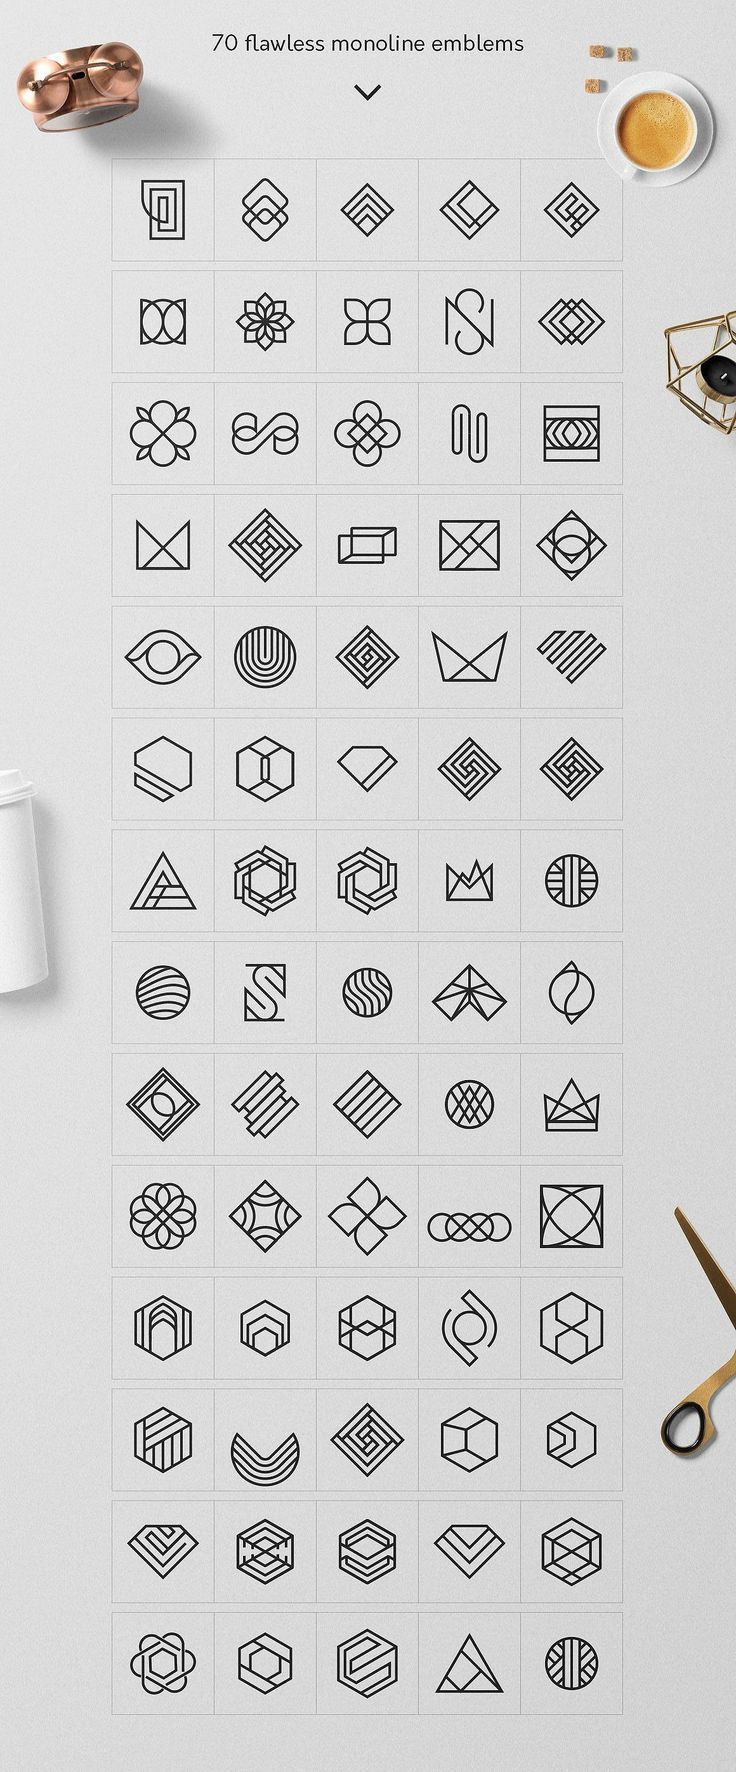 Ideas Para Crear Tu Logo Personal Sale Geometric Logo Pack By Davide Bassu On Creativemarket In 2020 Geometric Logo Logo Design Logo Design Inspiration